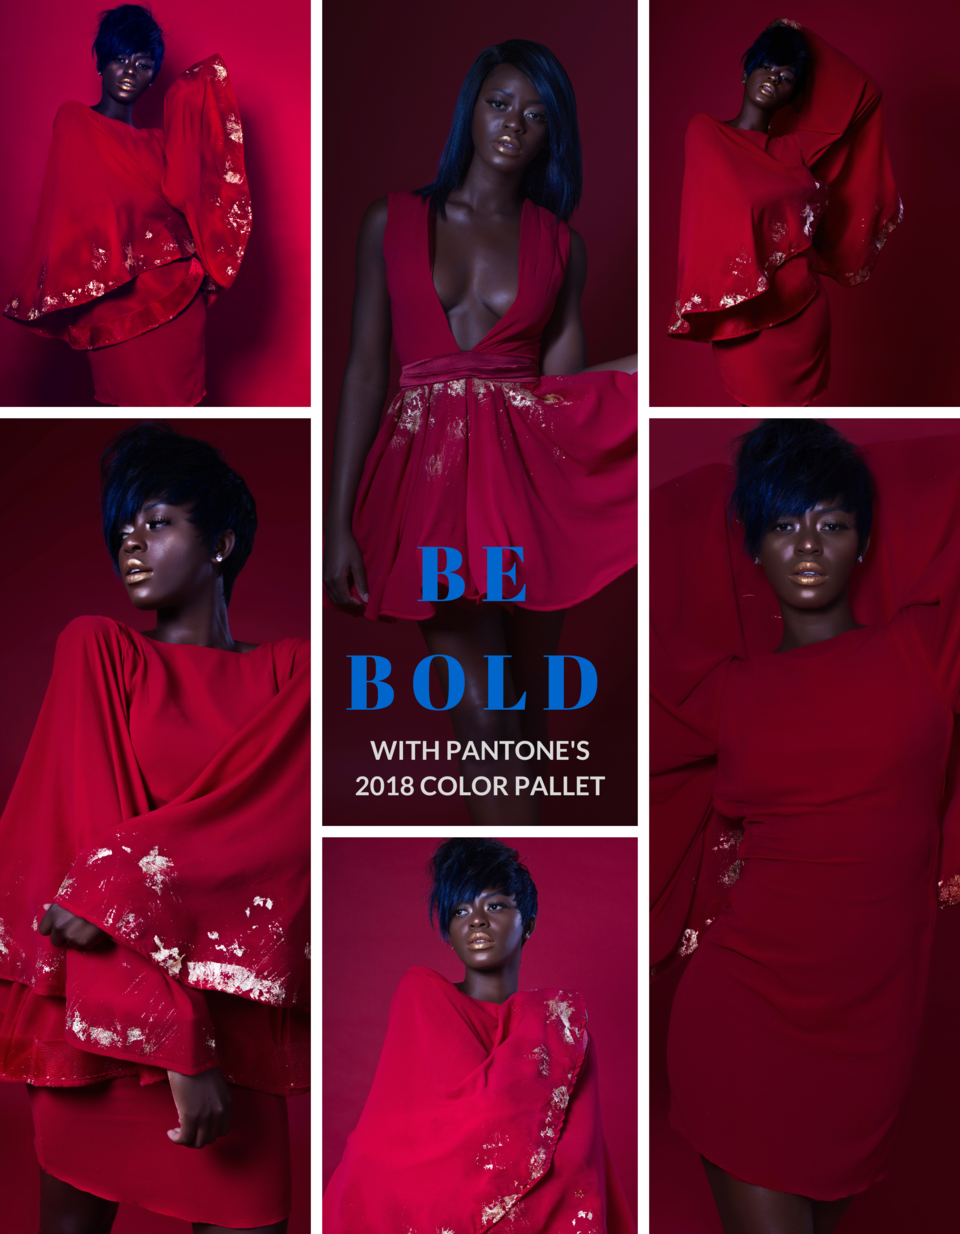 BE BOLD WITH PANTONE S 2018 COLOR PALLET